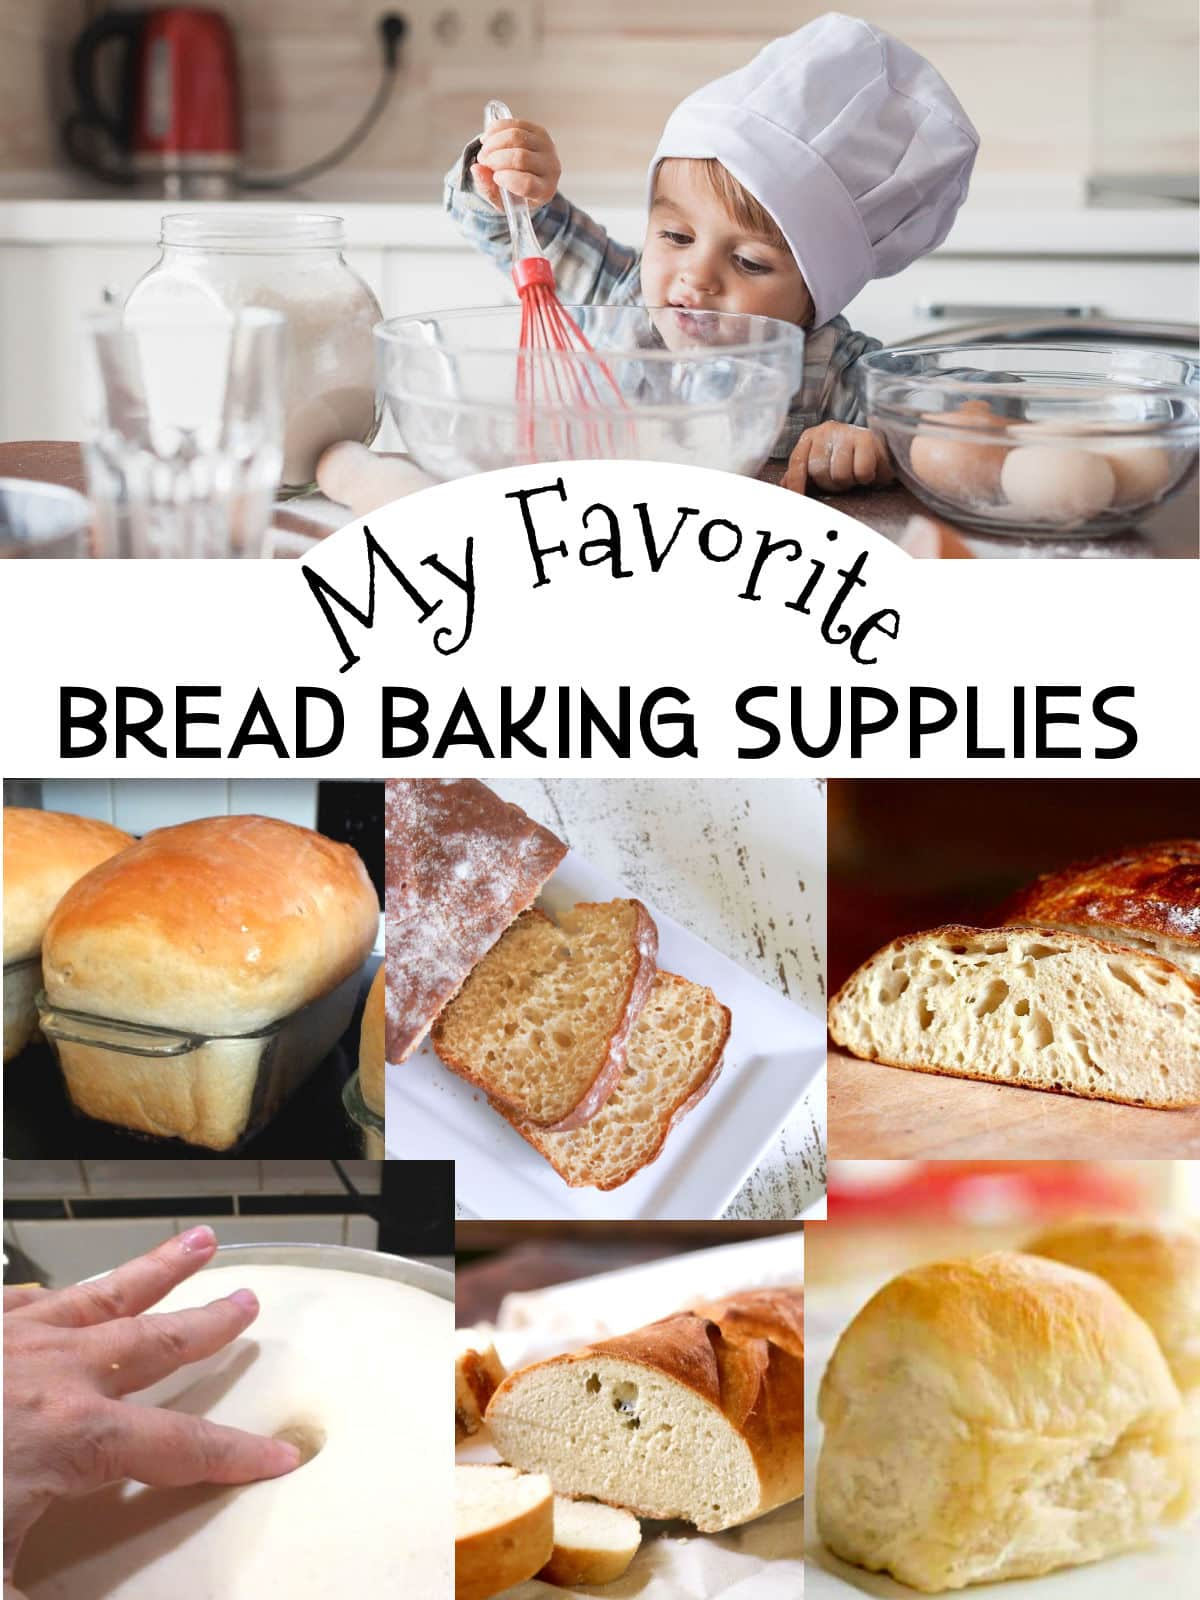 Collage of breads with text overlay for title.